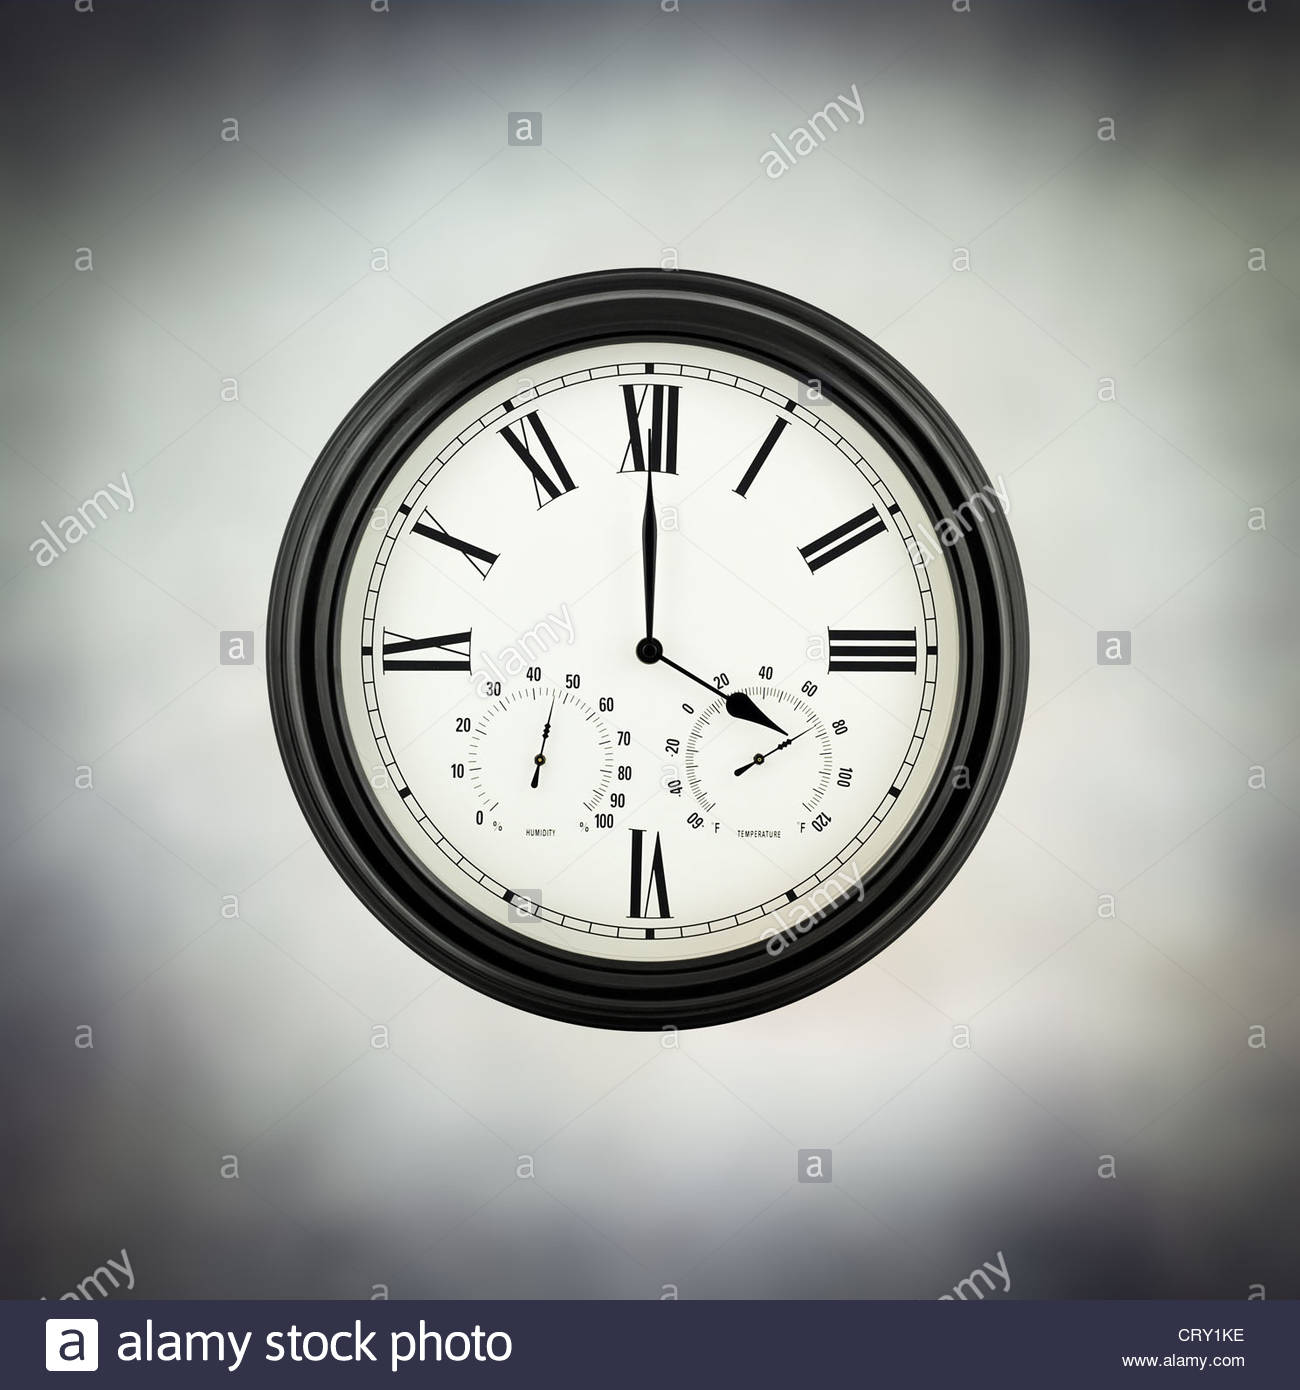 4 oclock - Stock Image